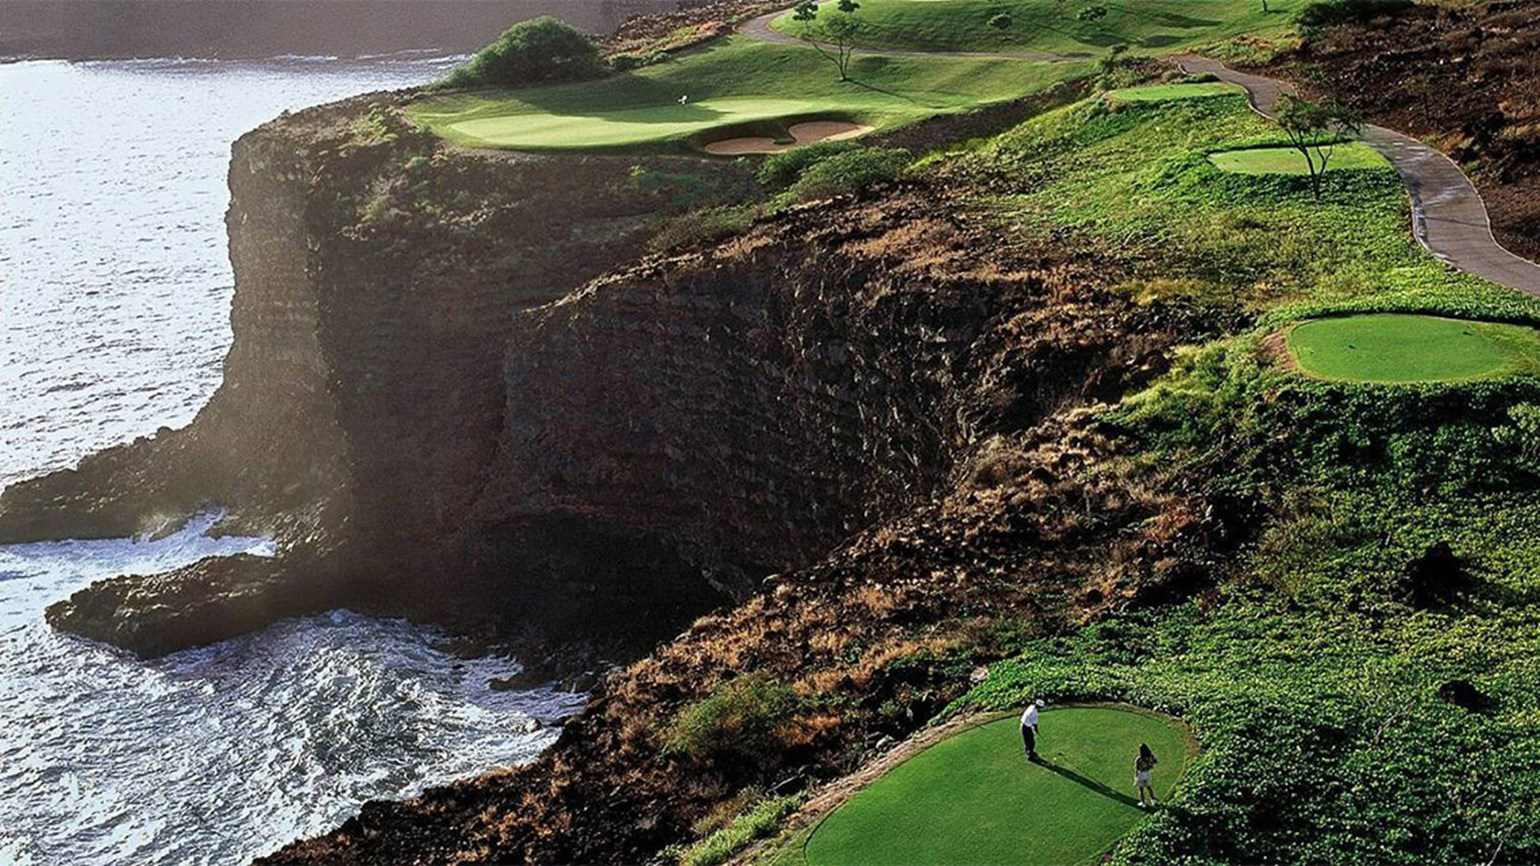 Four Seasons Lanai package combines golf, sport shooting